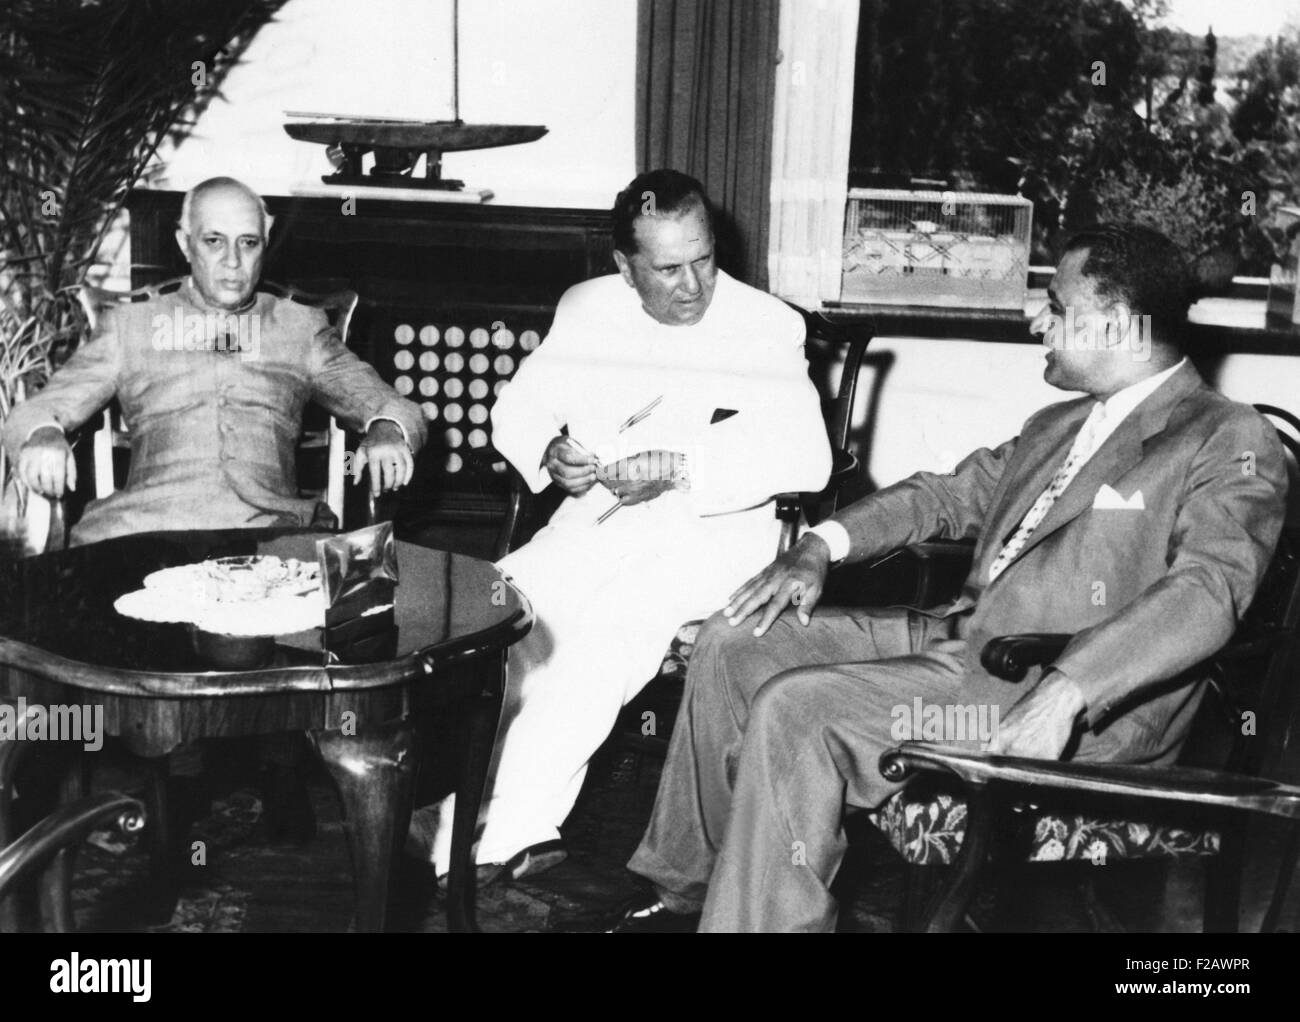 Prime Minister Nehru, Yugoslav President Tito, and Egyptian President Nasser in a conference. July 18, 1956. The Stock Photo